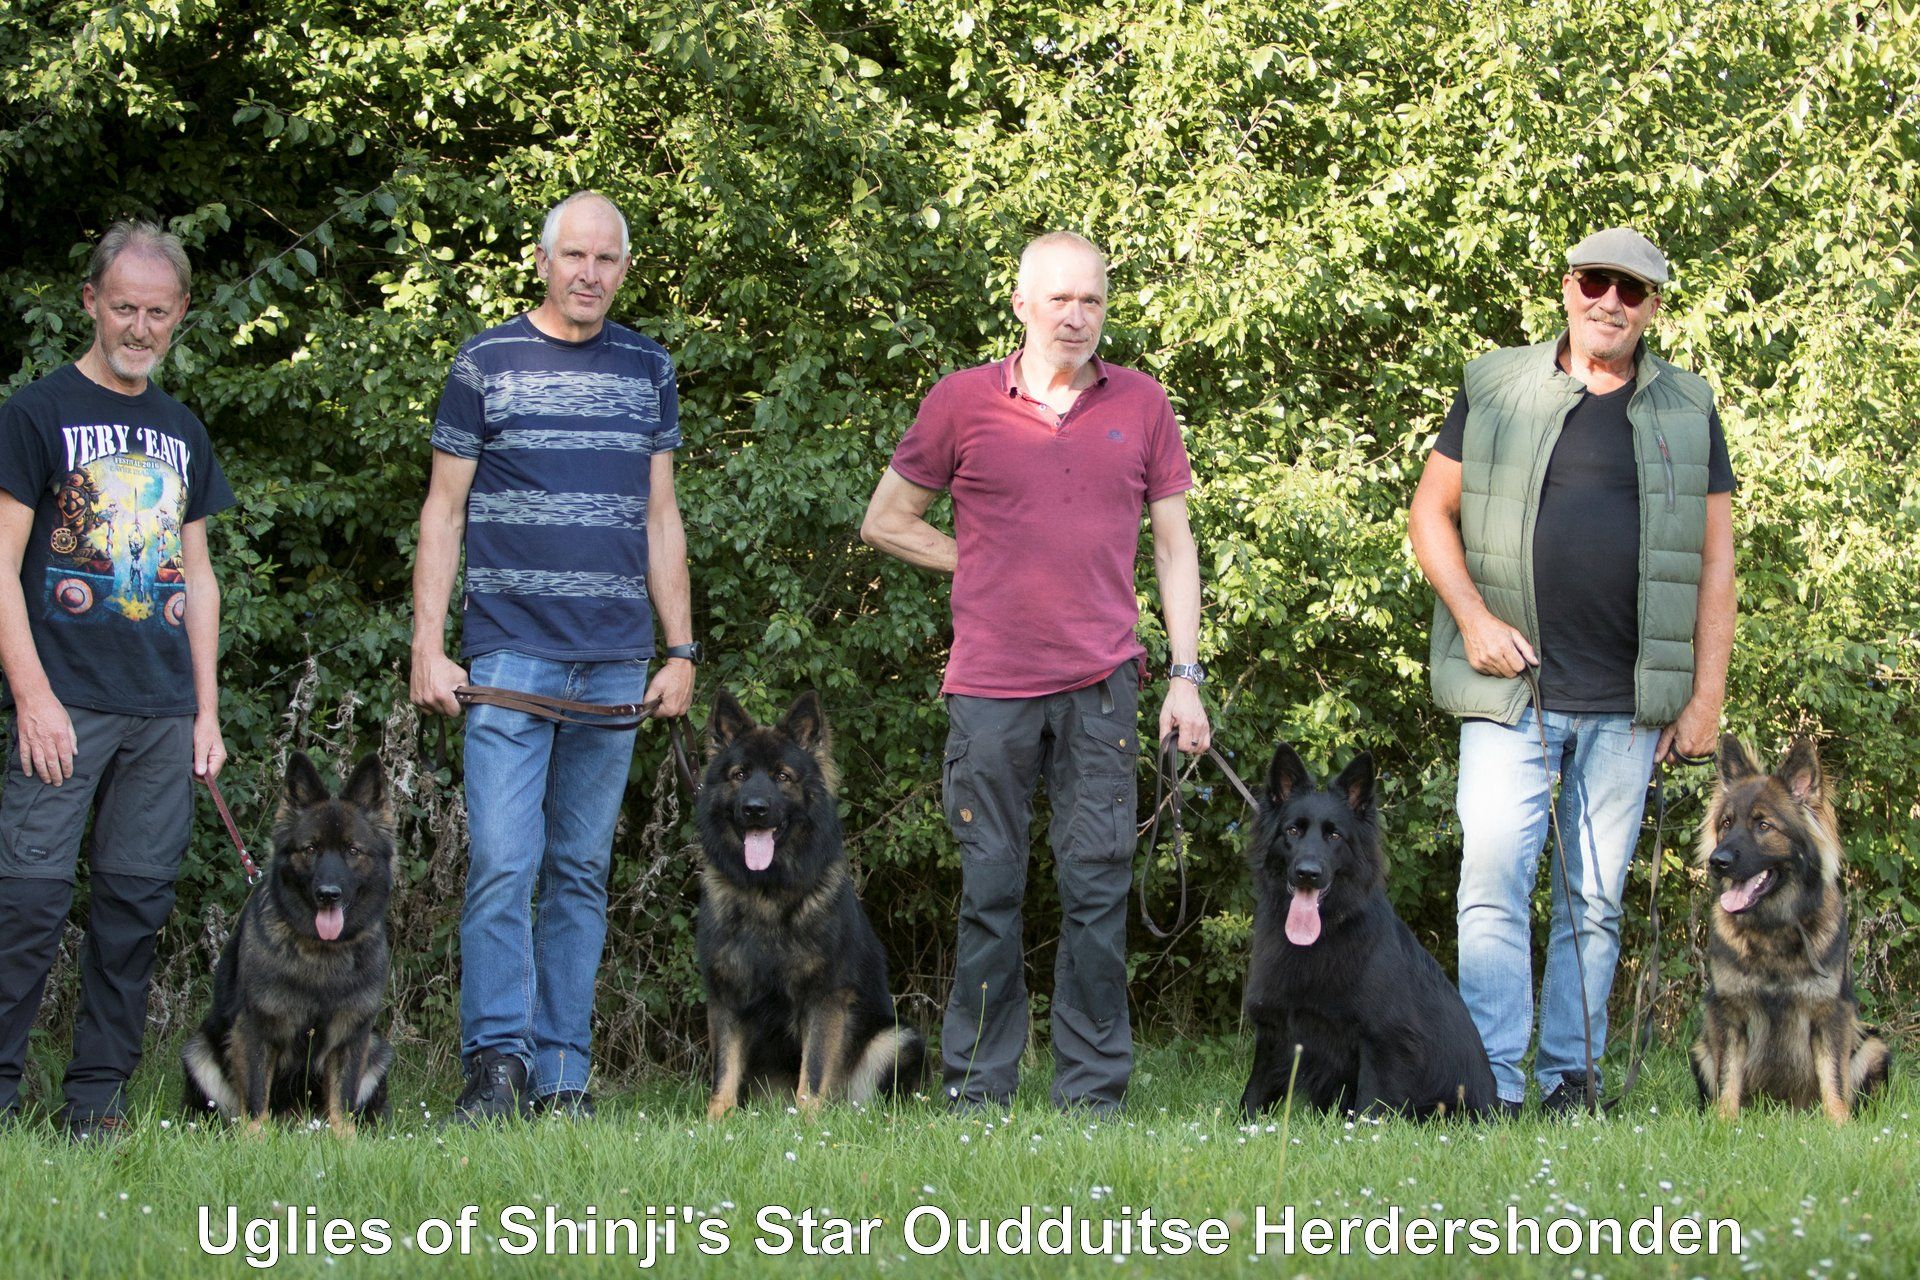 Oudduitse Herders Of Shinji's Star